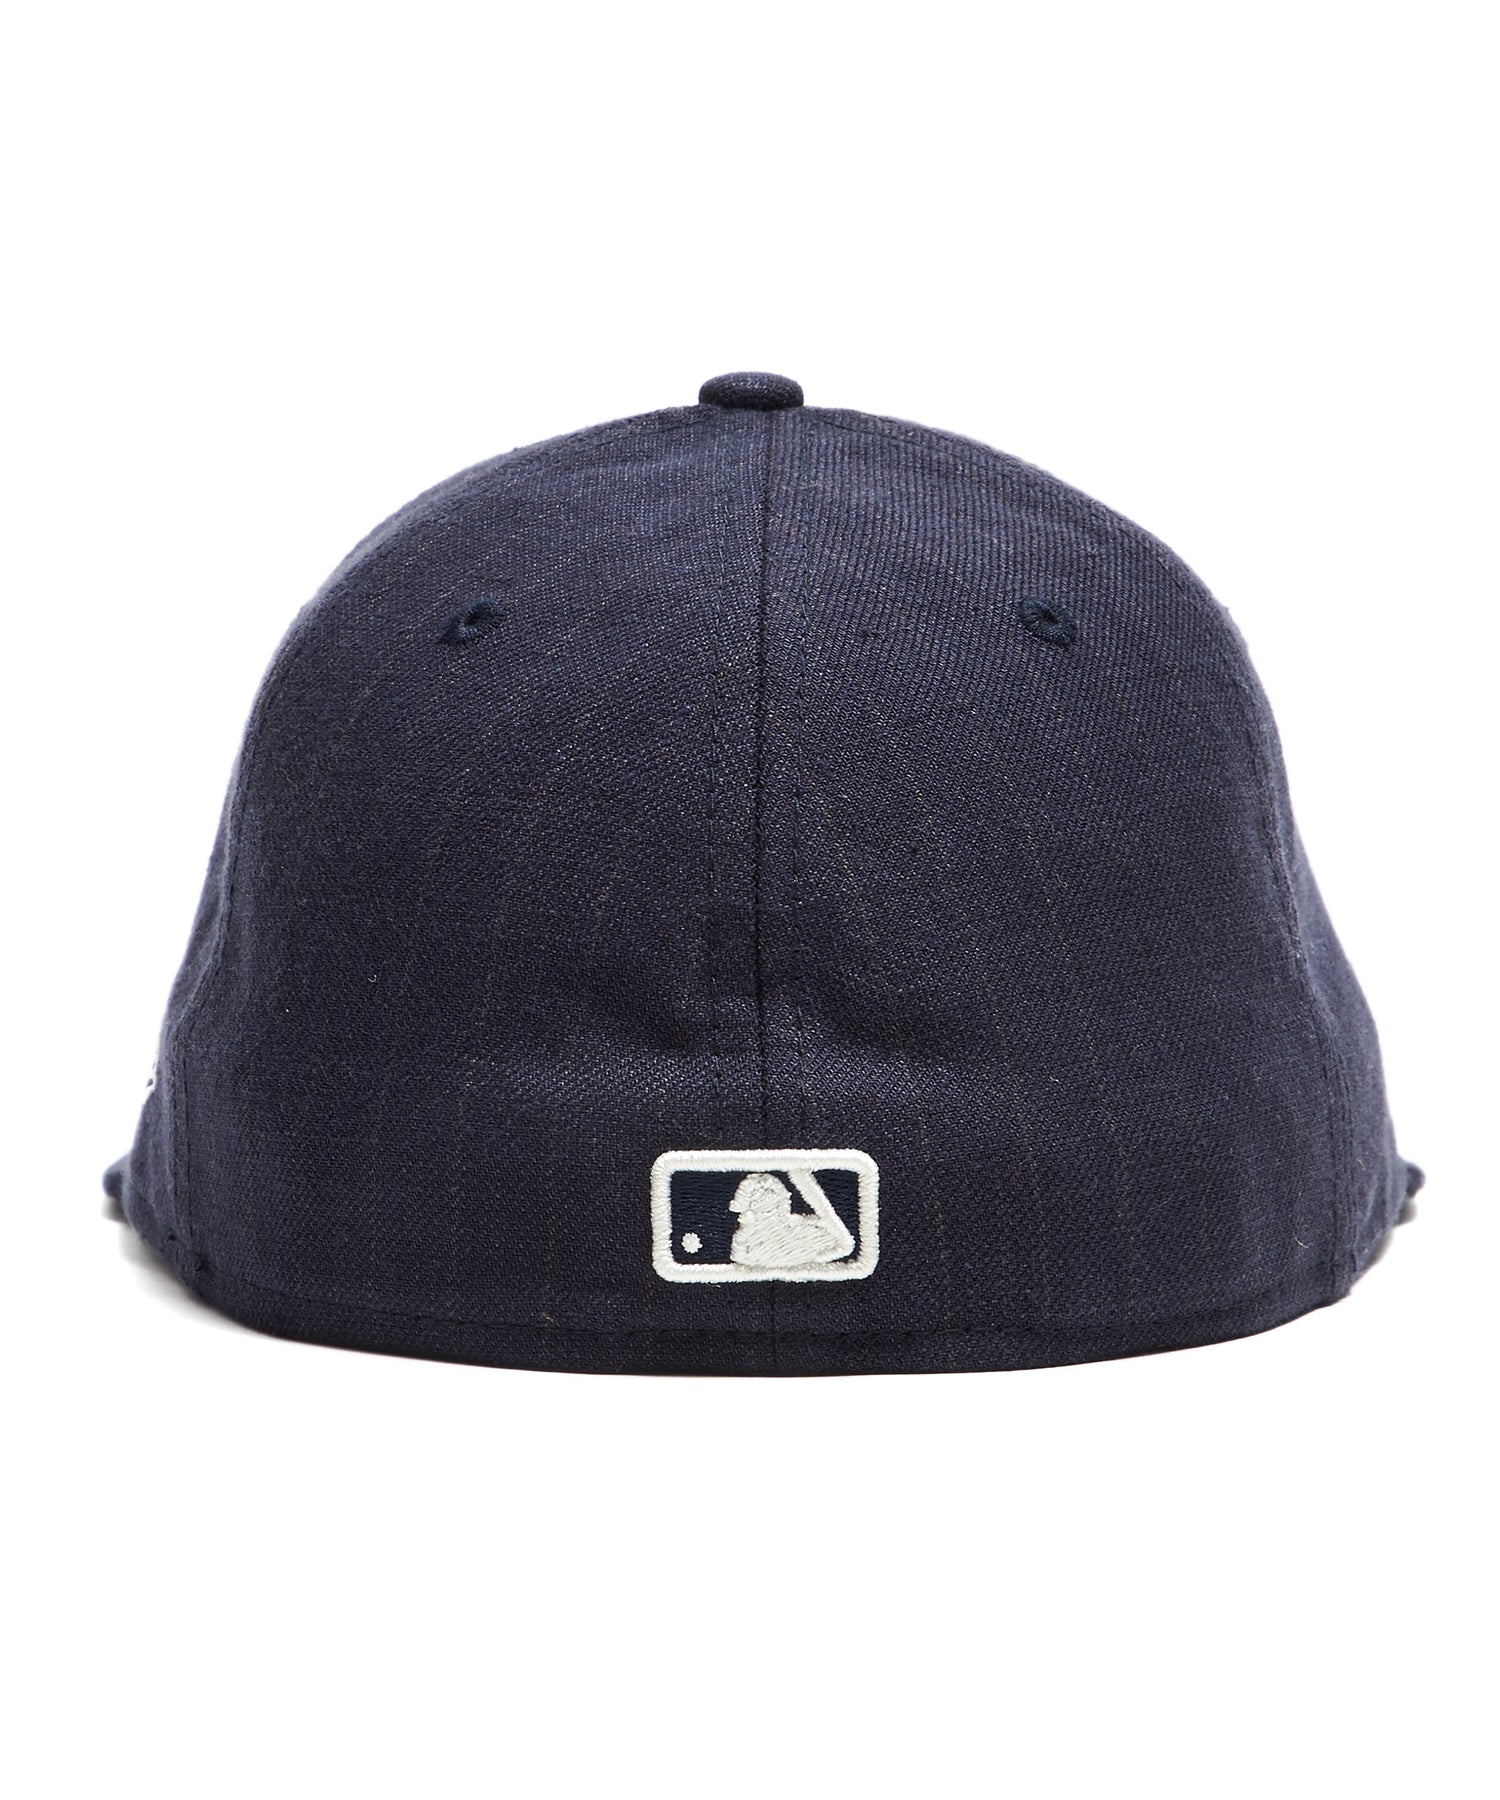 89355a57a Todd Snyder + New Era New York Yankees Cap In Navy Pinstripe